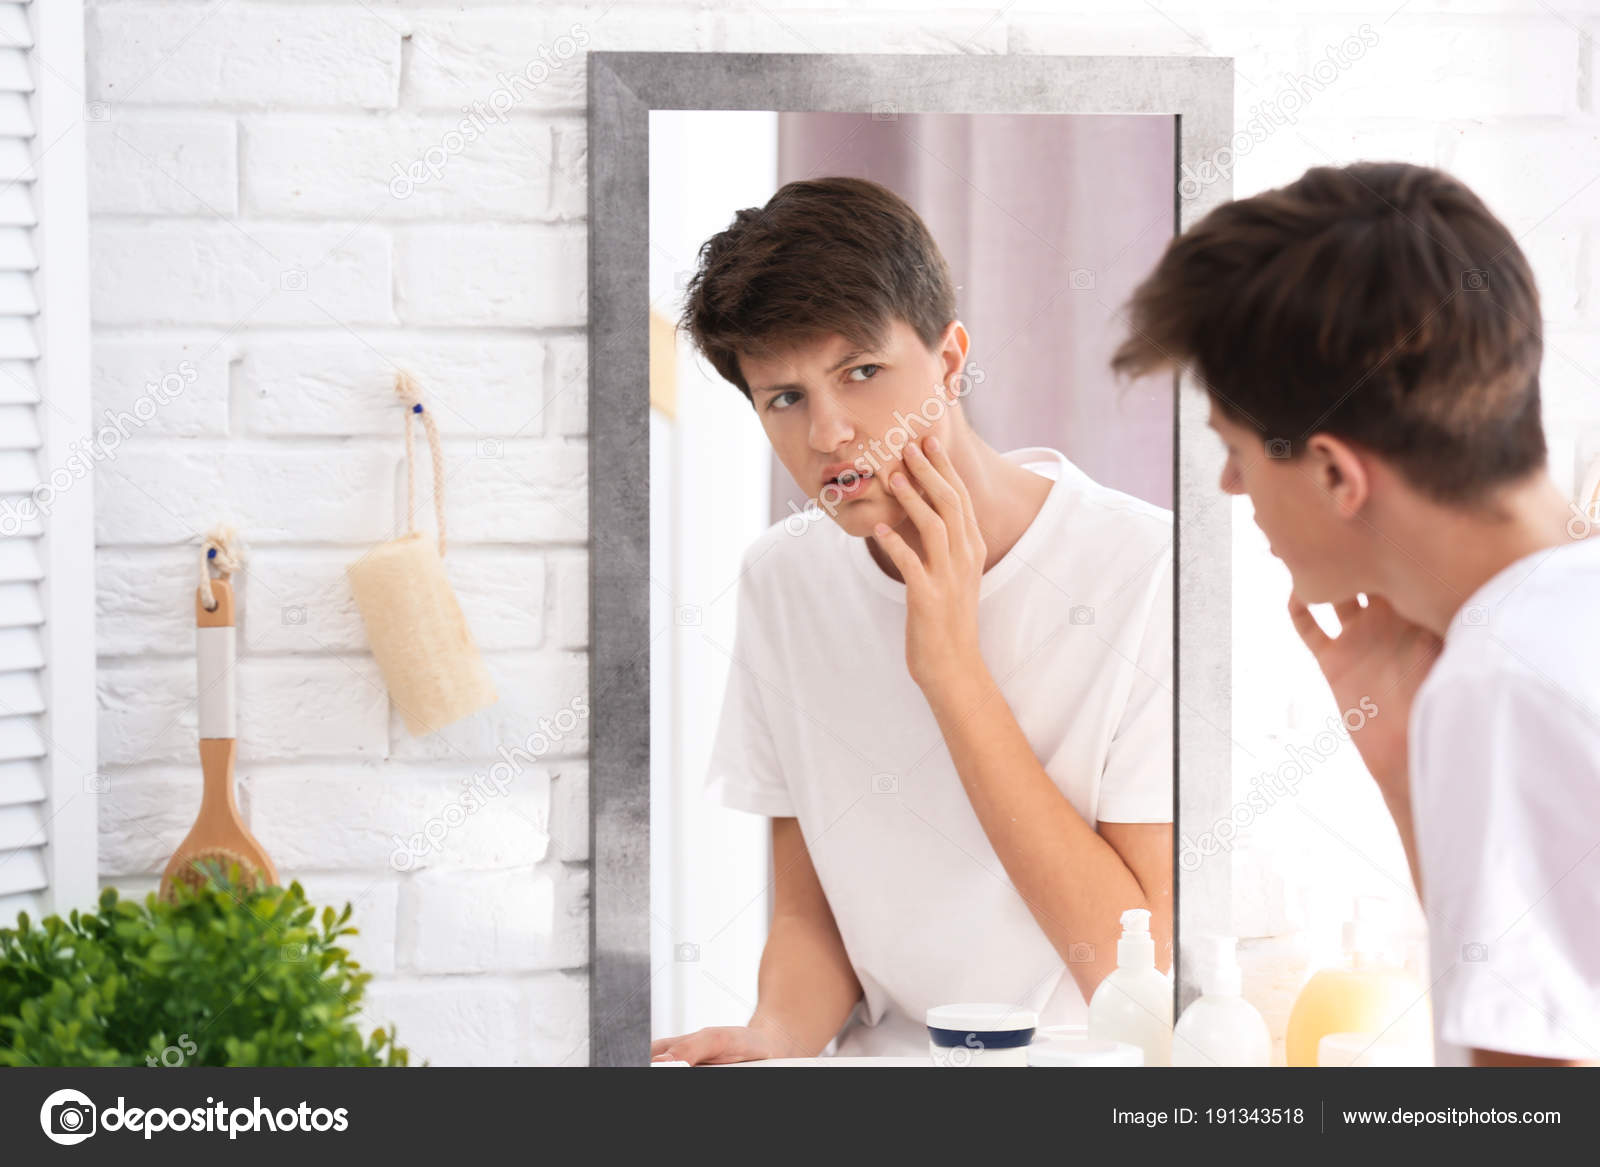 teenage boy with acne problem looking in mirror at home u2014 stock photo o80 mirror